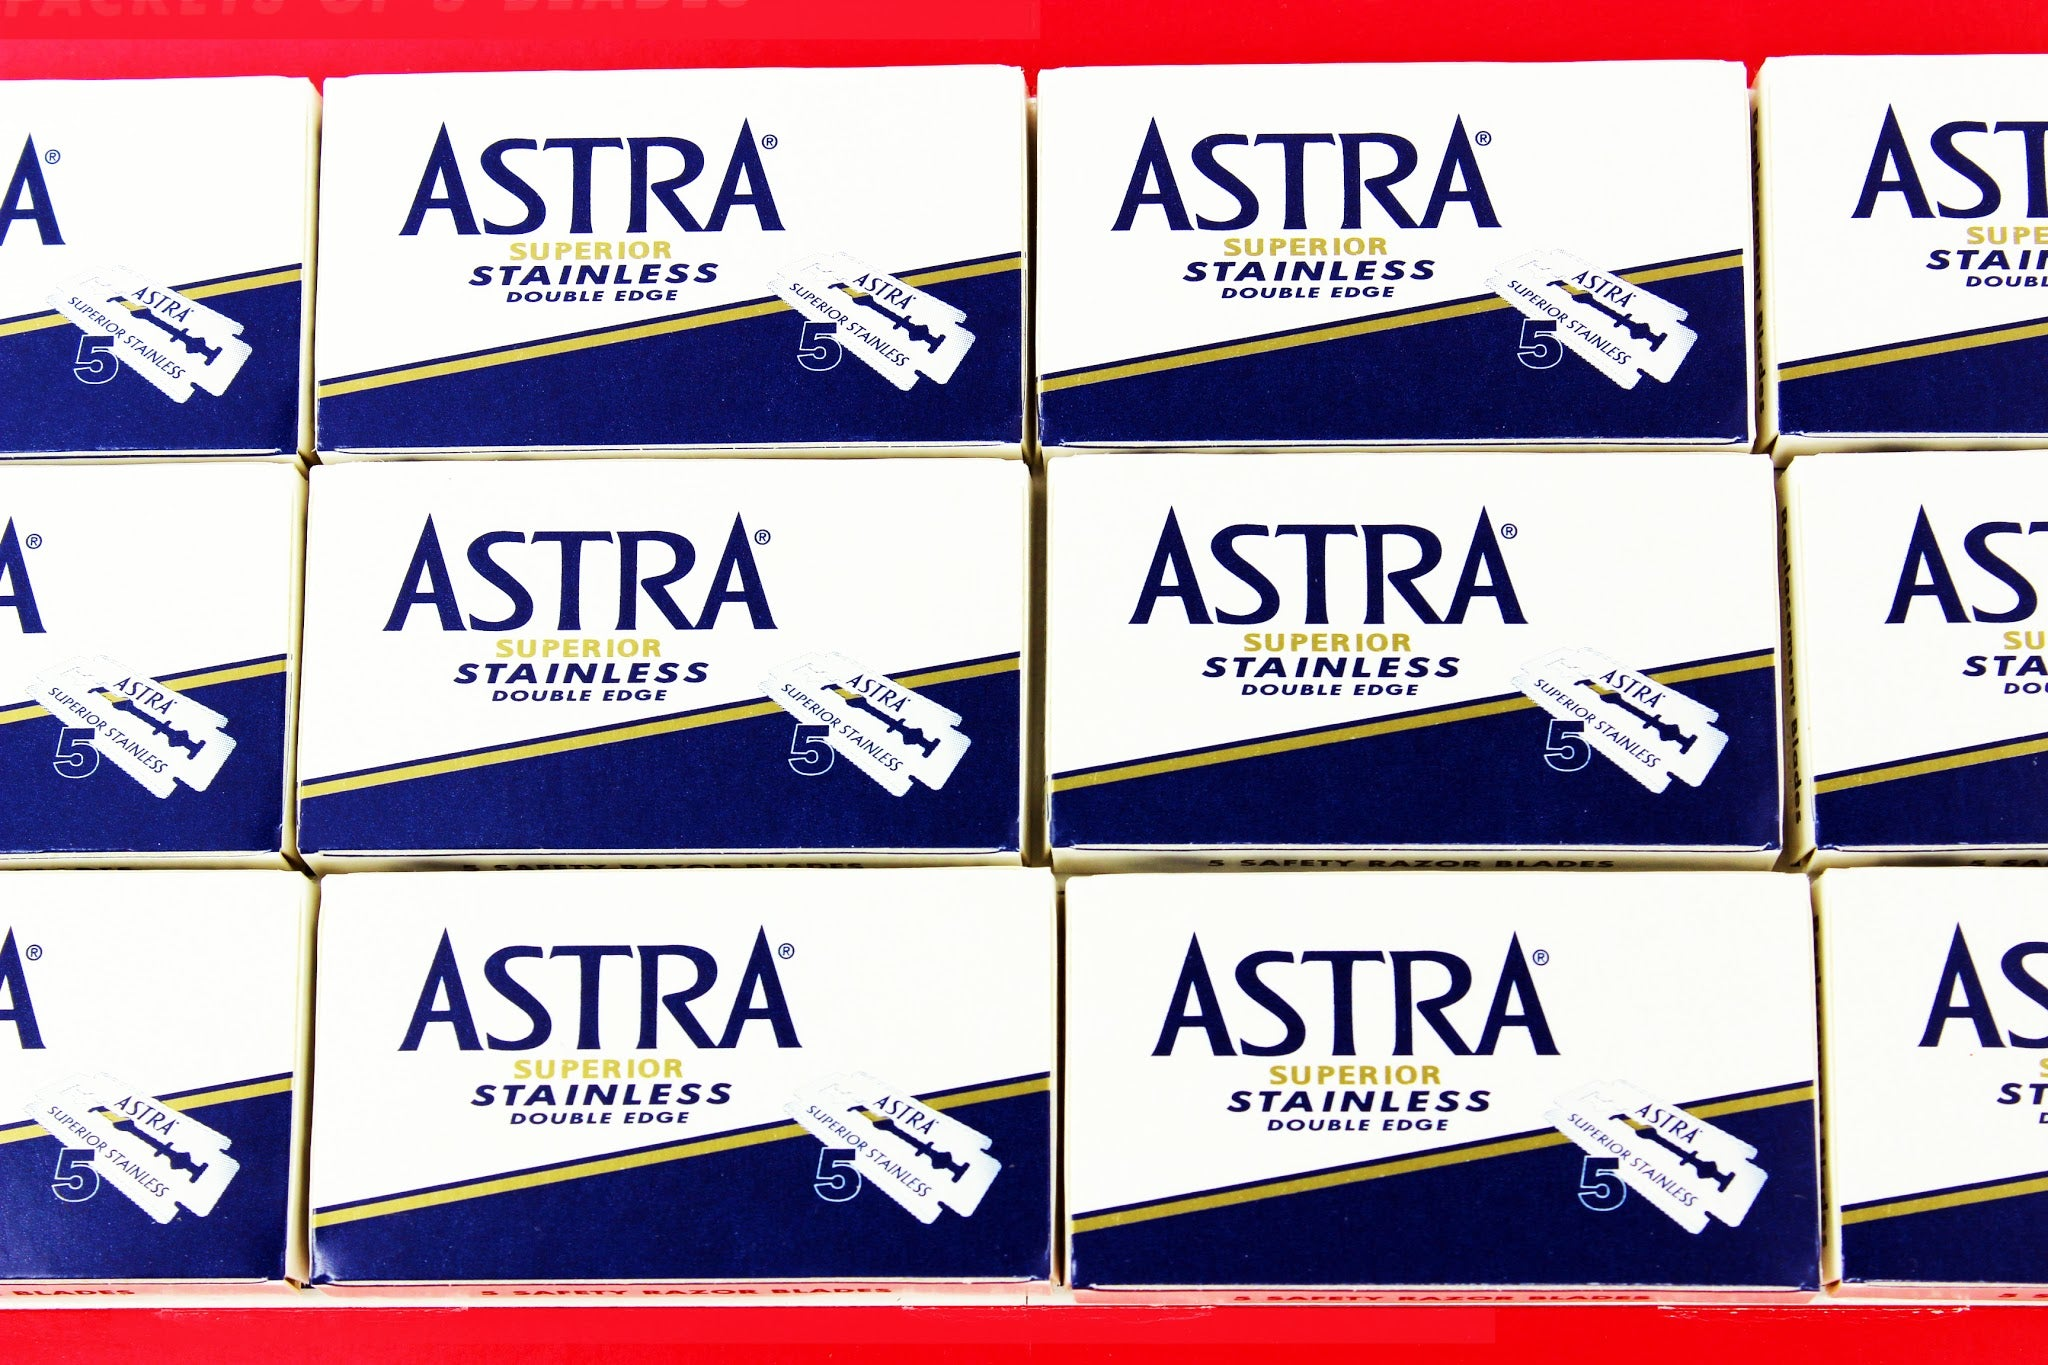 Astra Double Edge Shaving Razors